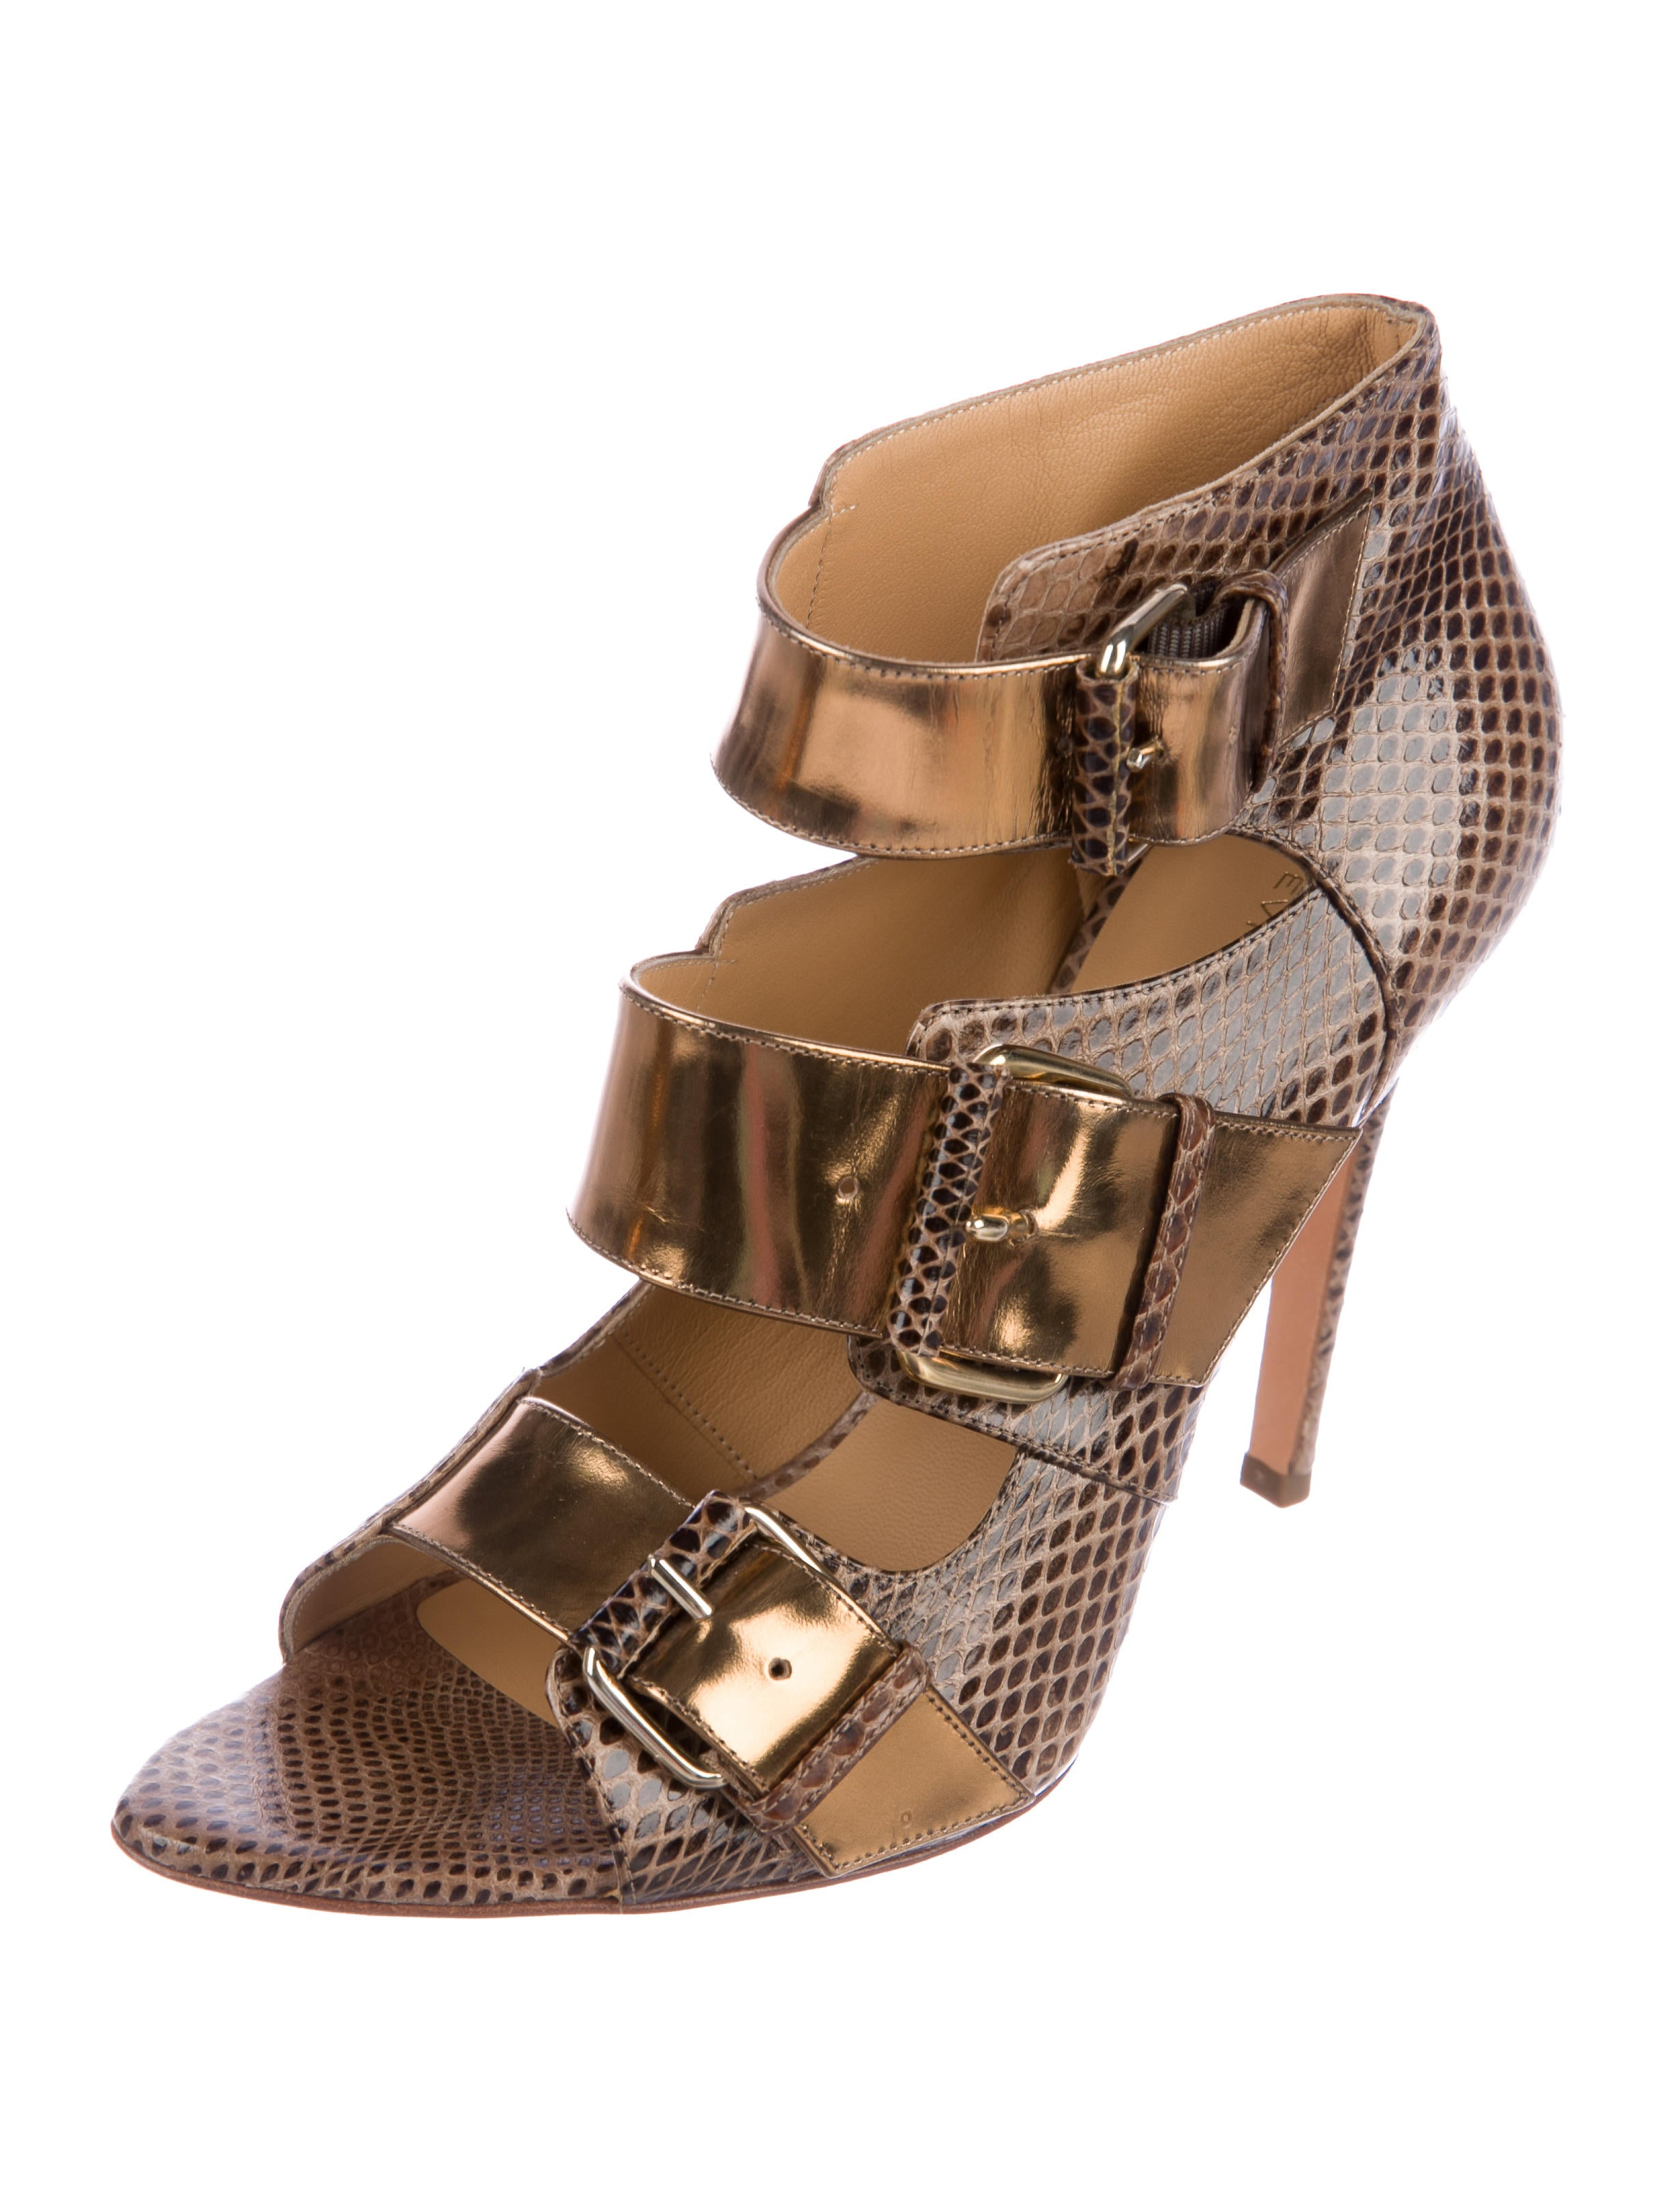 comfortable cheap price Devi Kroell Embossed Leather Sandals brand new unisex sale online free shipping genuine 8NxQYnY8Y